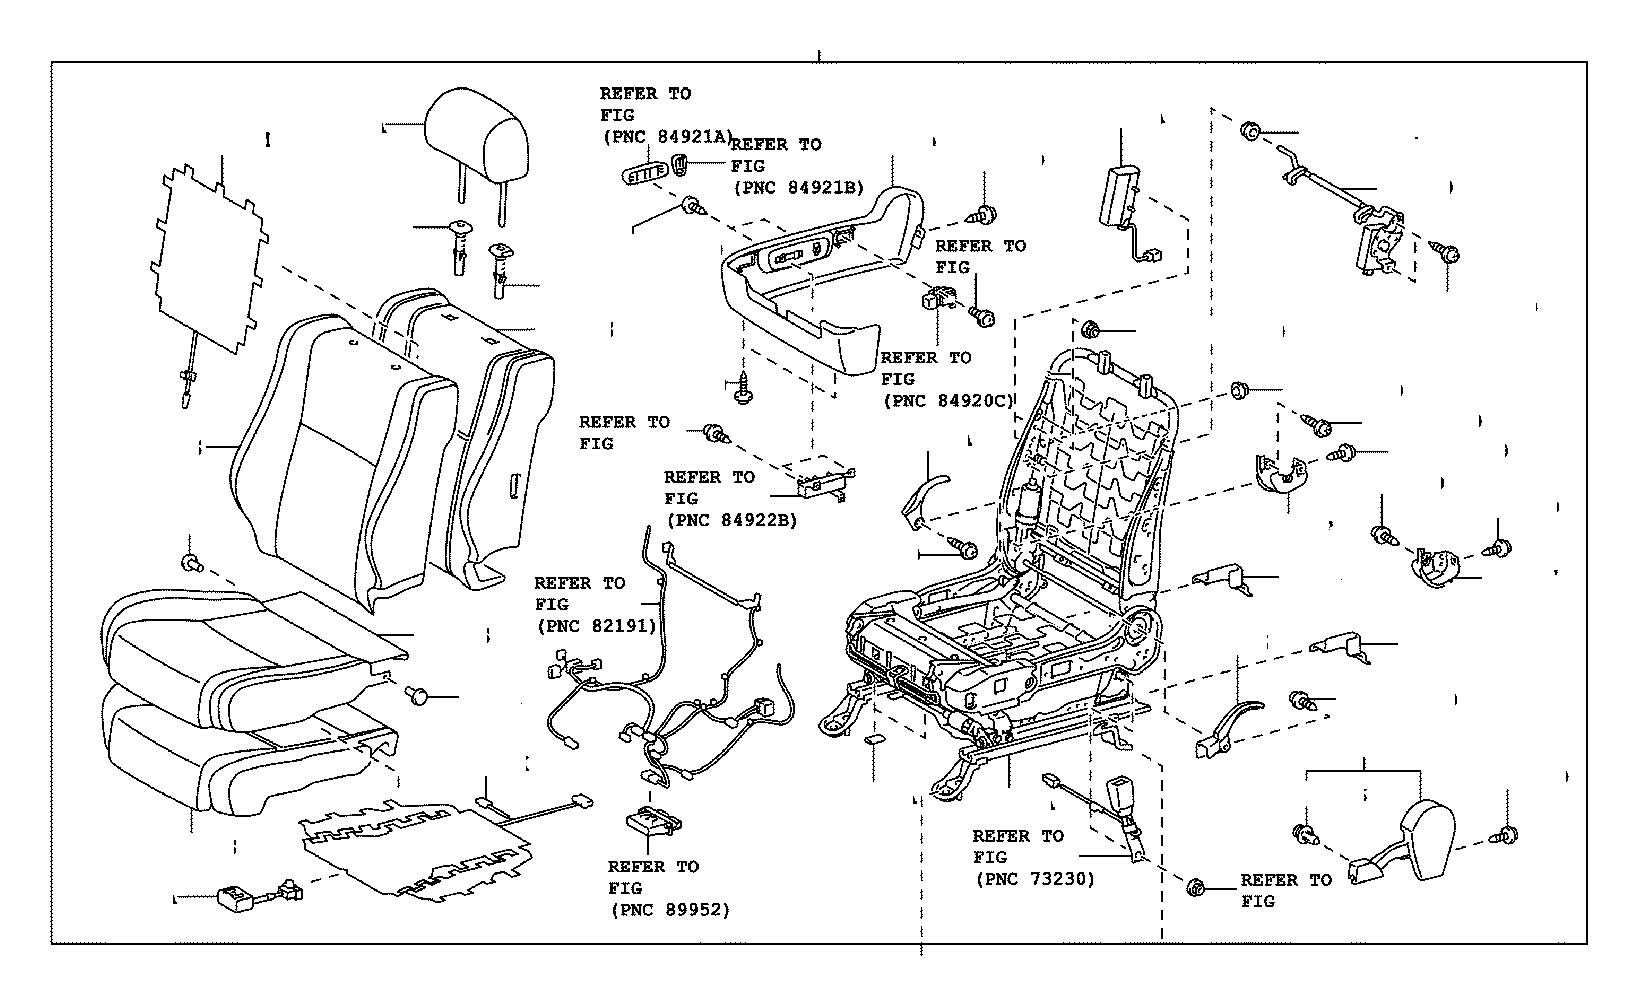 Toyota Tundra Seat assembly, front right. Gray